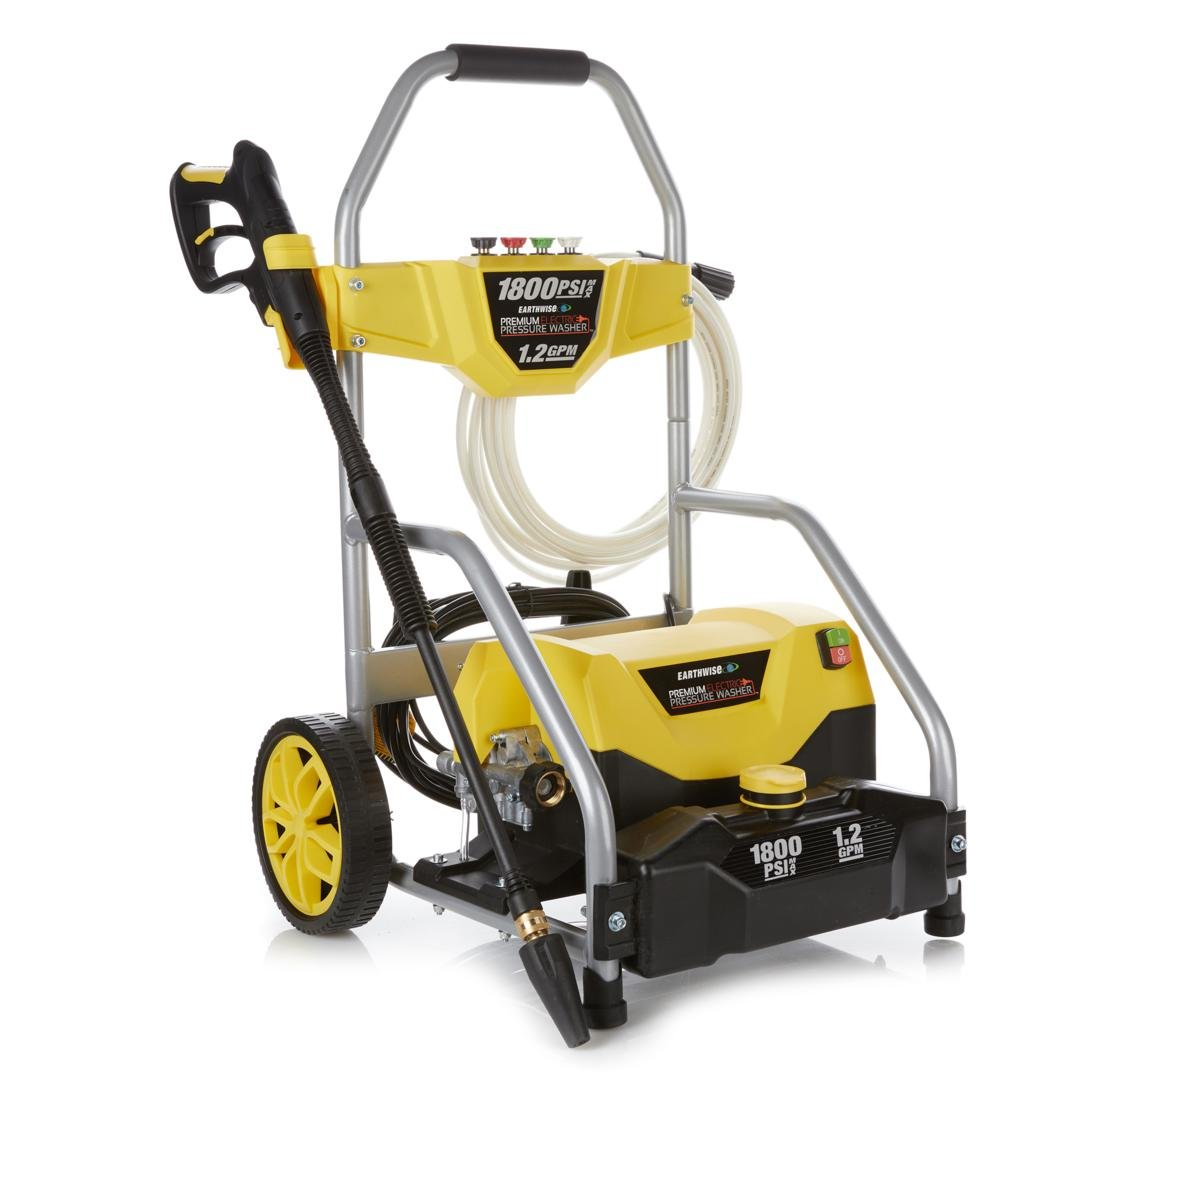 Earthwise 1800 PSI Electric Pressure Washer with Turbo Wand - Yellow